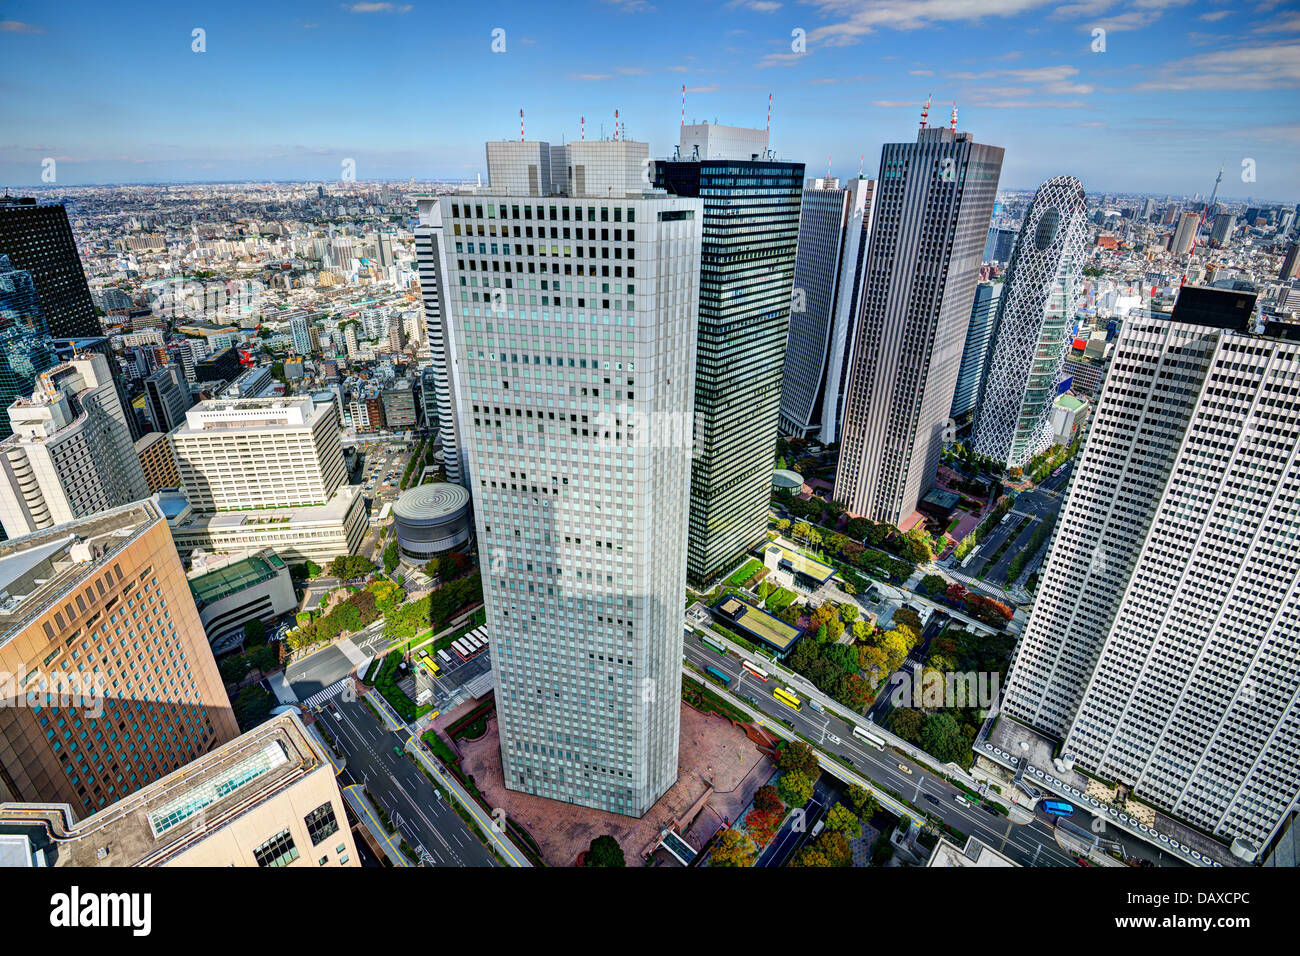 e Shinjuku financial district of Tokyo, Japan. - Stock Image